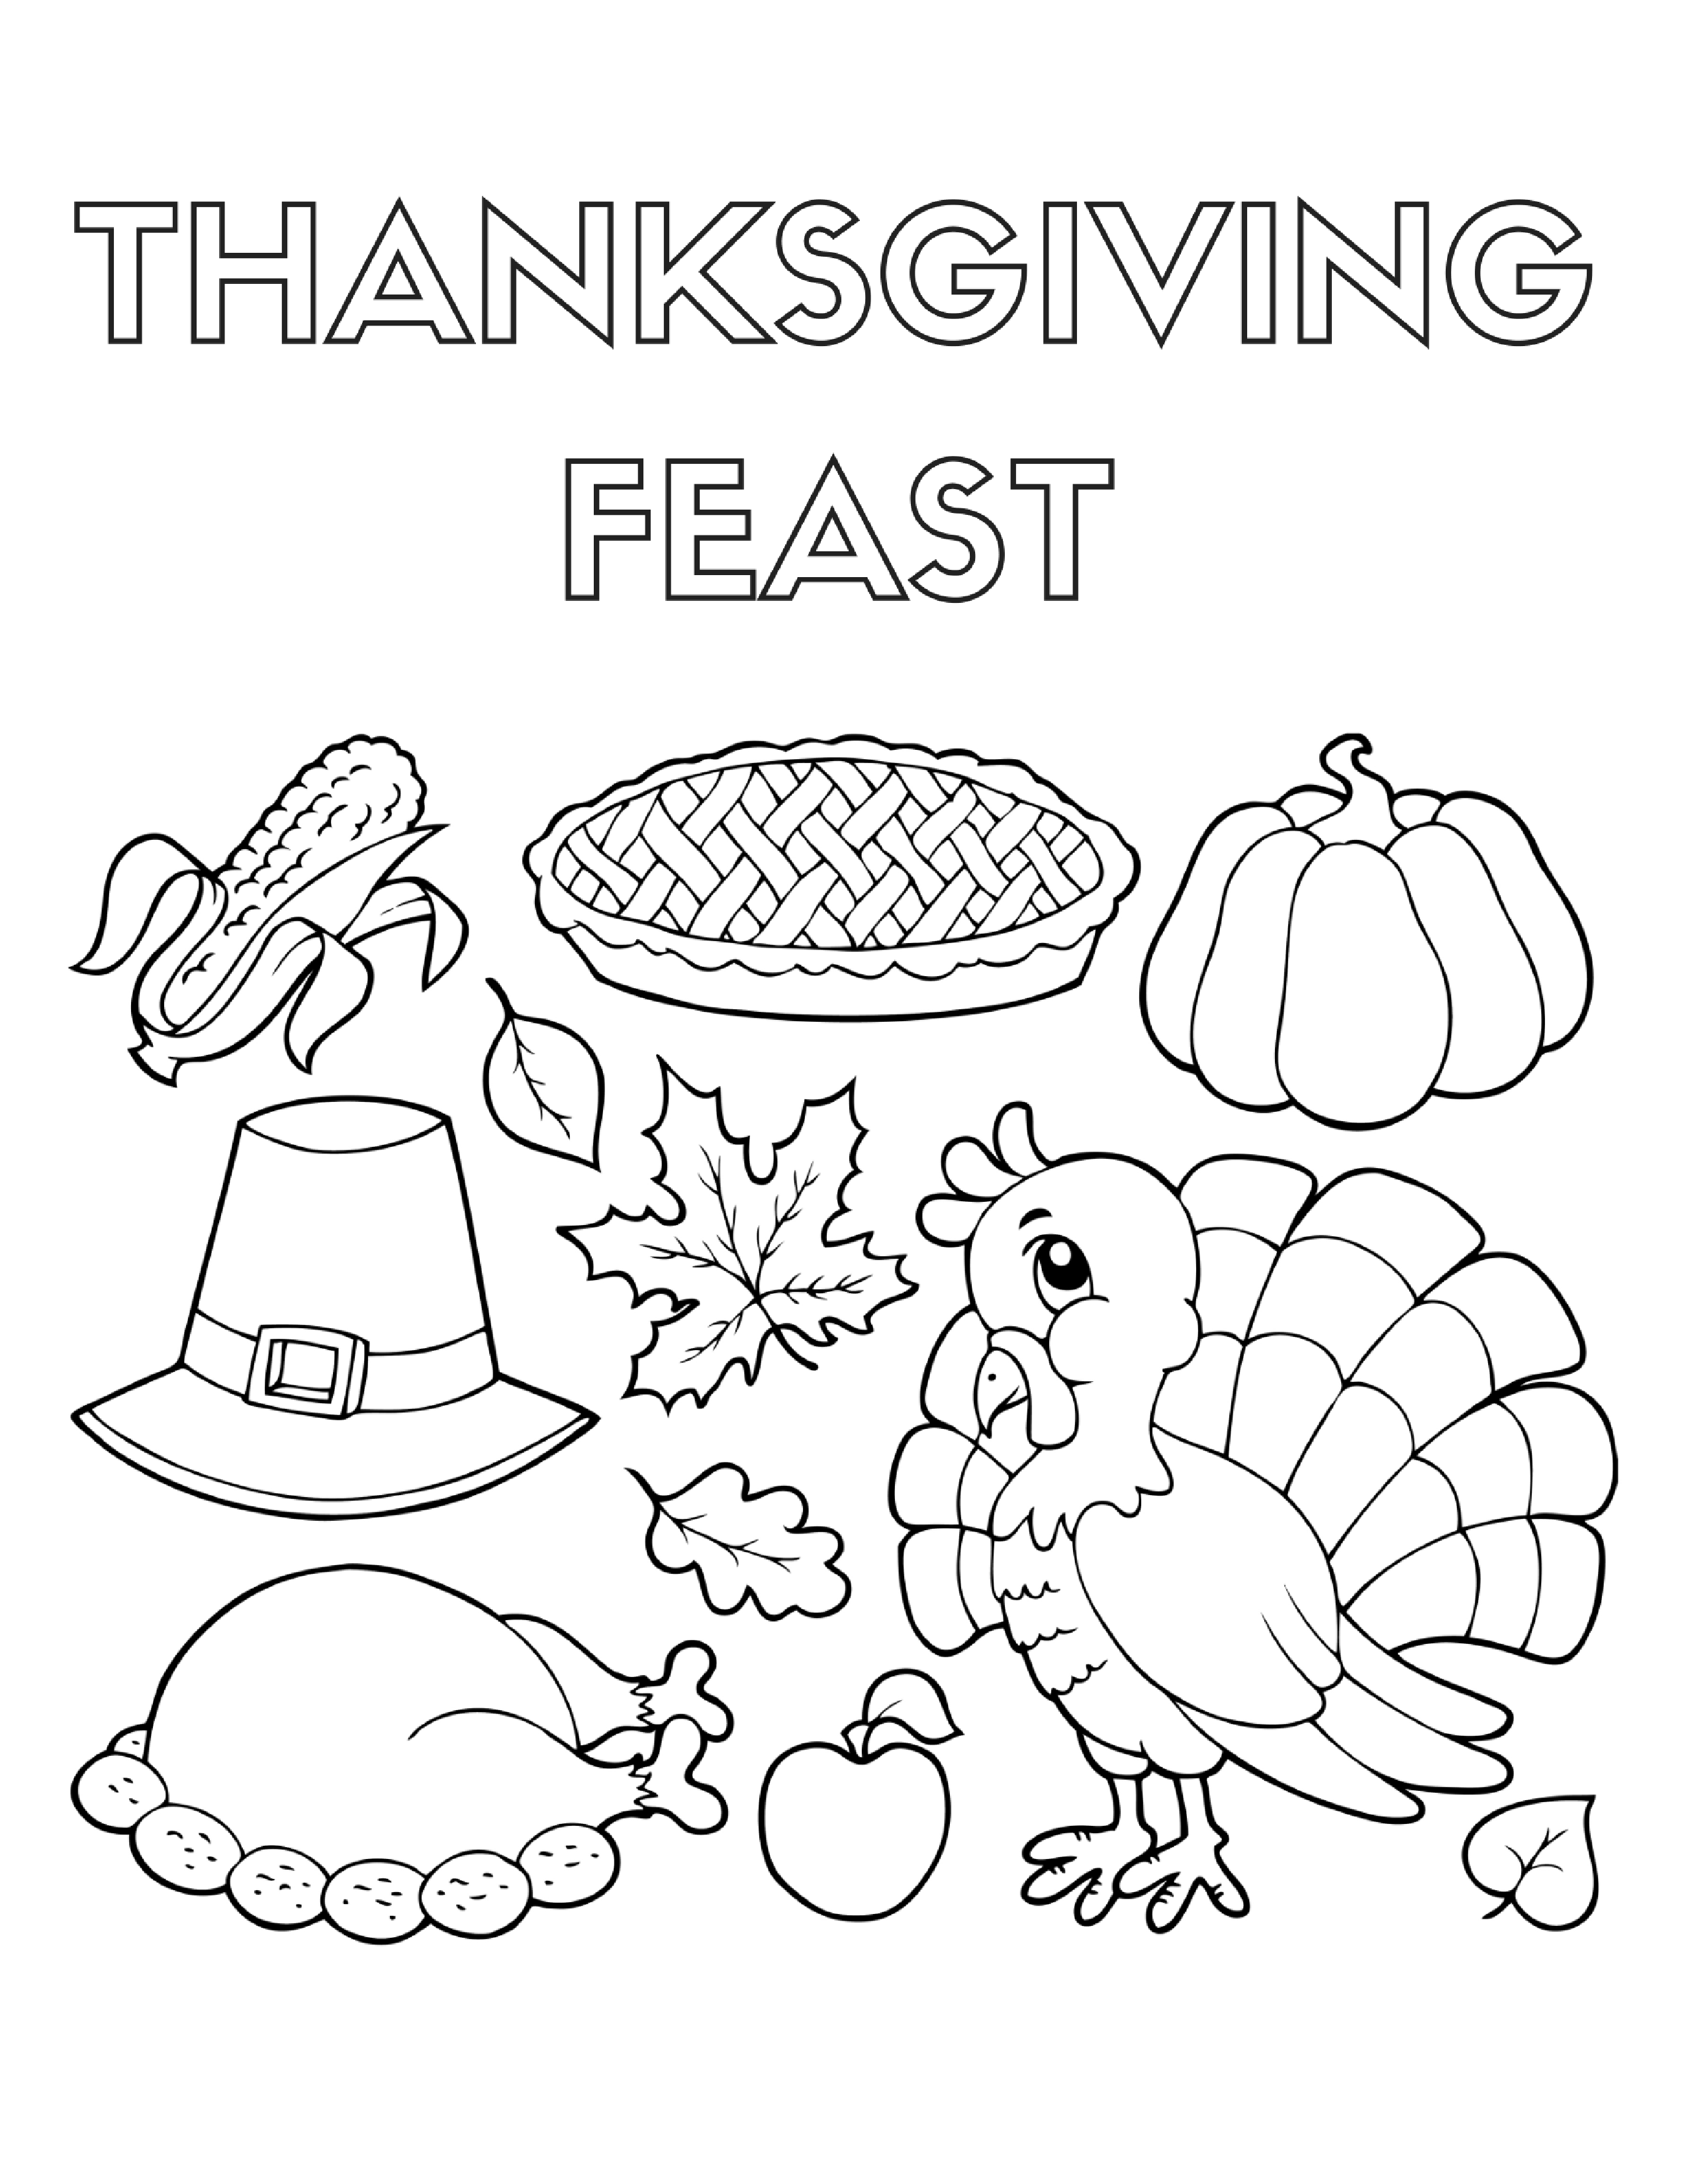 Thanksgiving Color Pages Check Out These Cute Coloring Sheets Thanksgiving Coloring Pages Turkey Coloring Pages Food Coloring Pages